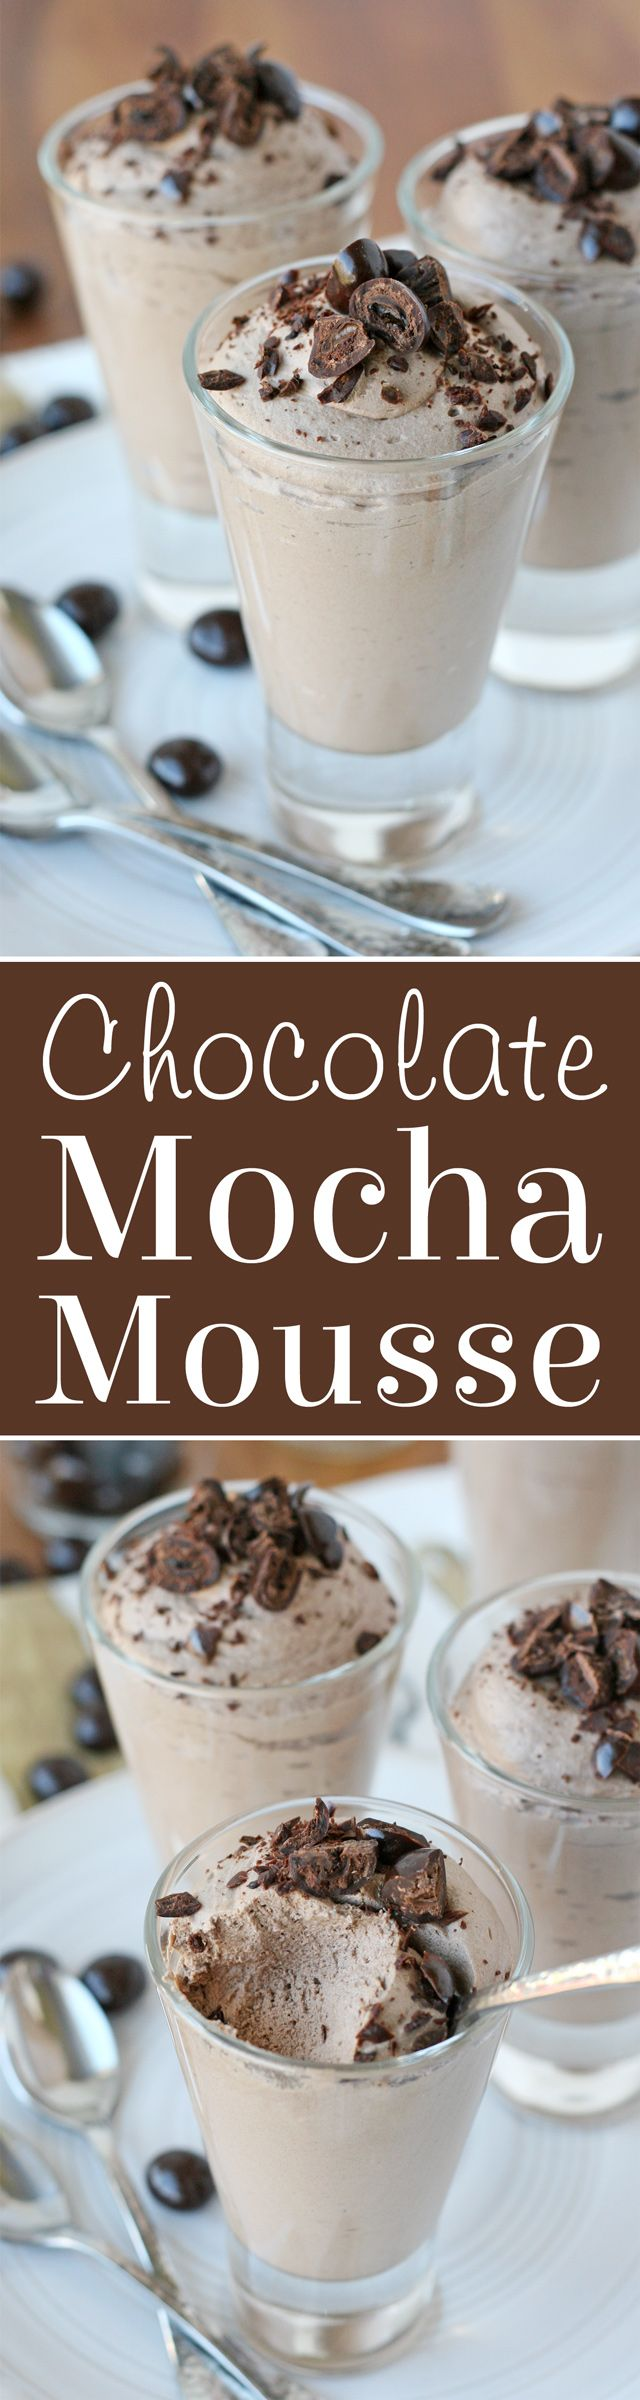 Creamy, fluffy, delicious MOCHA MOUSSE RECIPE